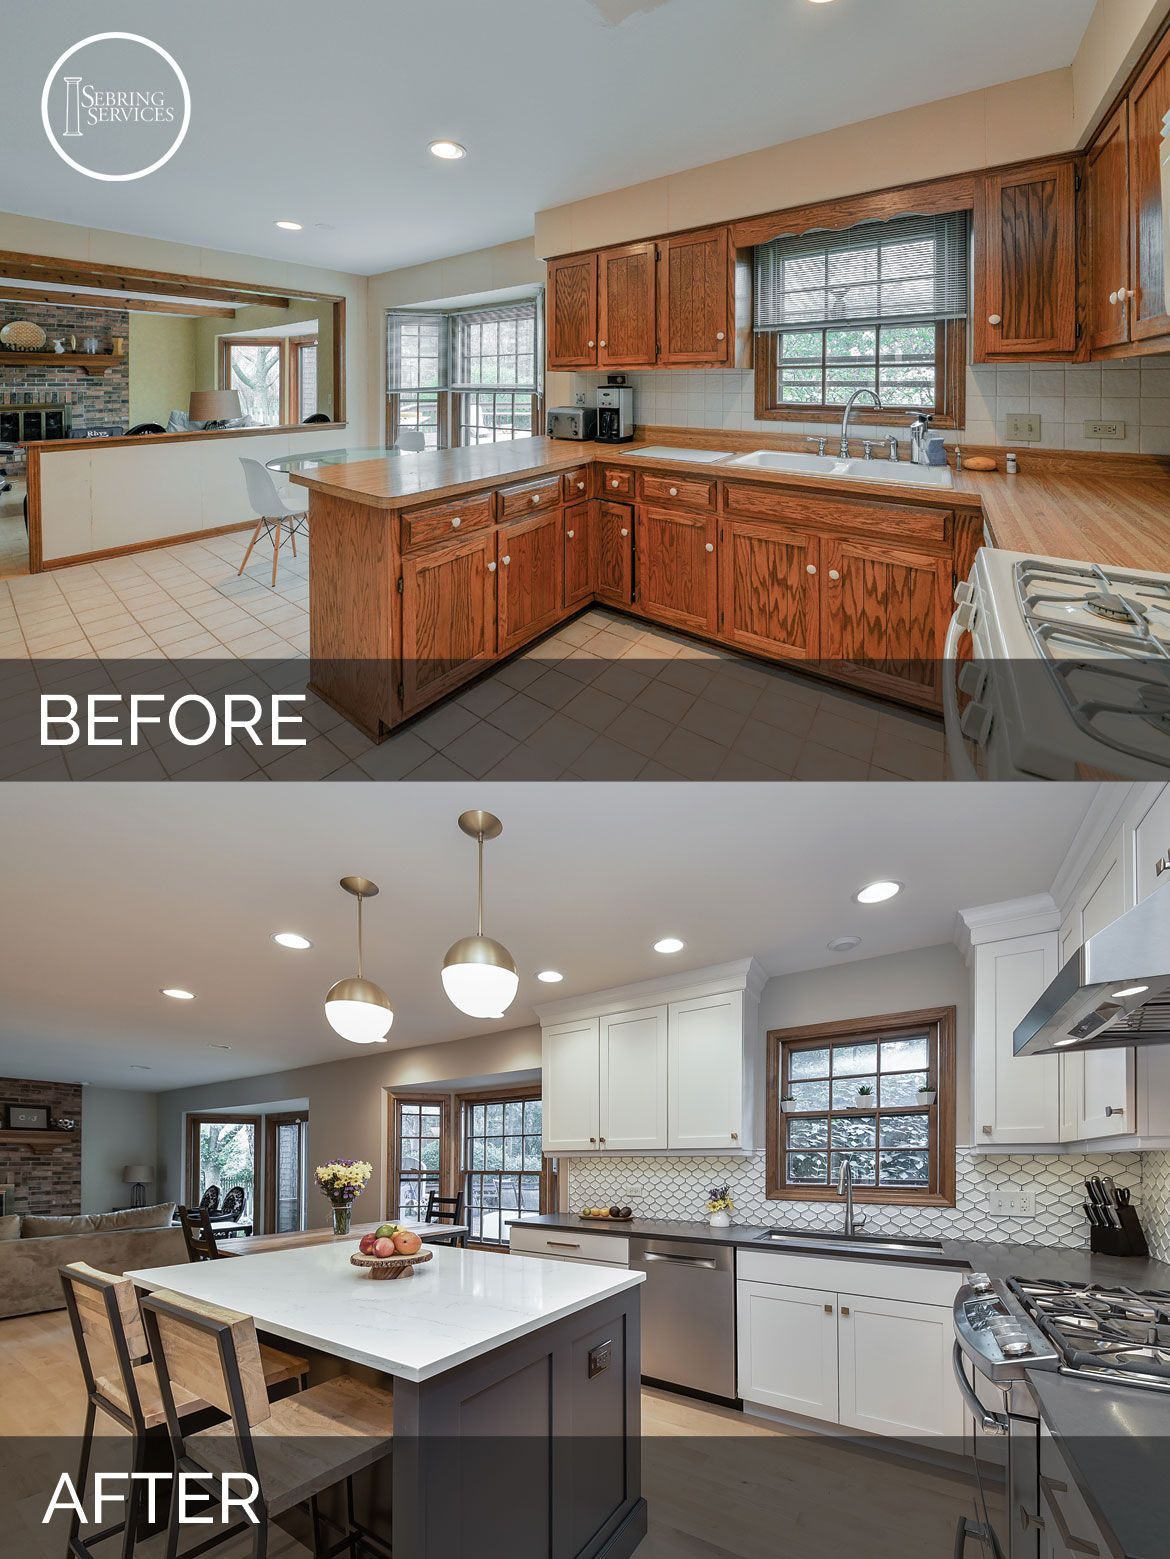 justin carina s kitchen before after pictures kitchen remodeling projects kitchen on kitchen renovation id=67410